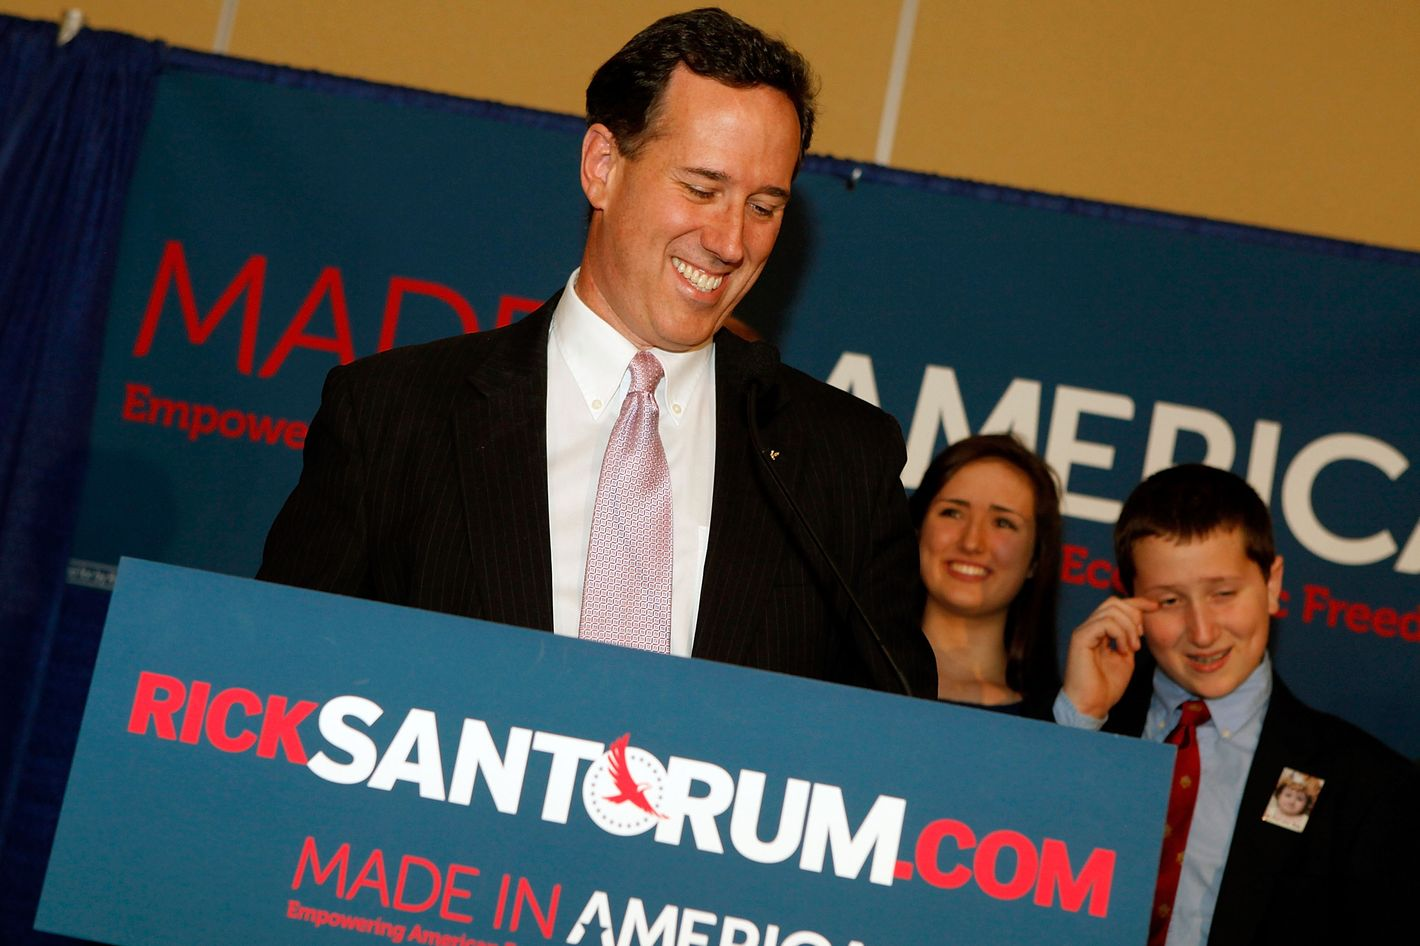 Republican presidential candidate, former U.S. Sen. Rick Santorum addresses supporters after winning the both Alabama and Mississippi primaries on March 13, 2012 in Lafayette, Louisiana.